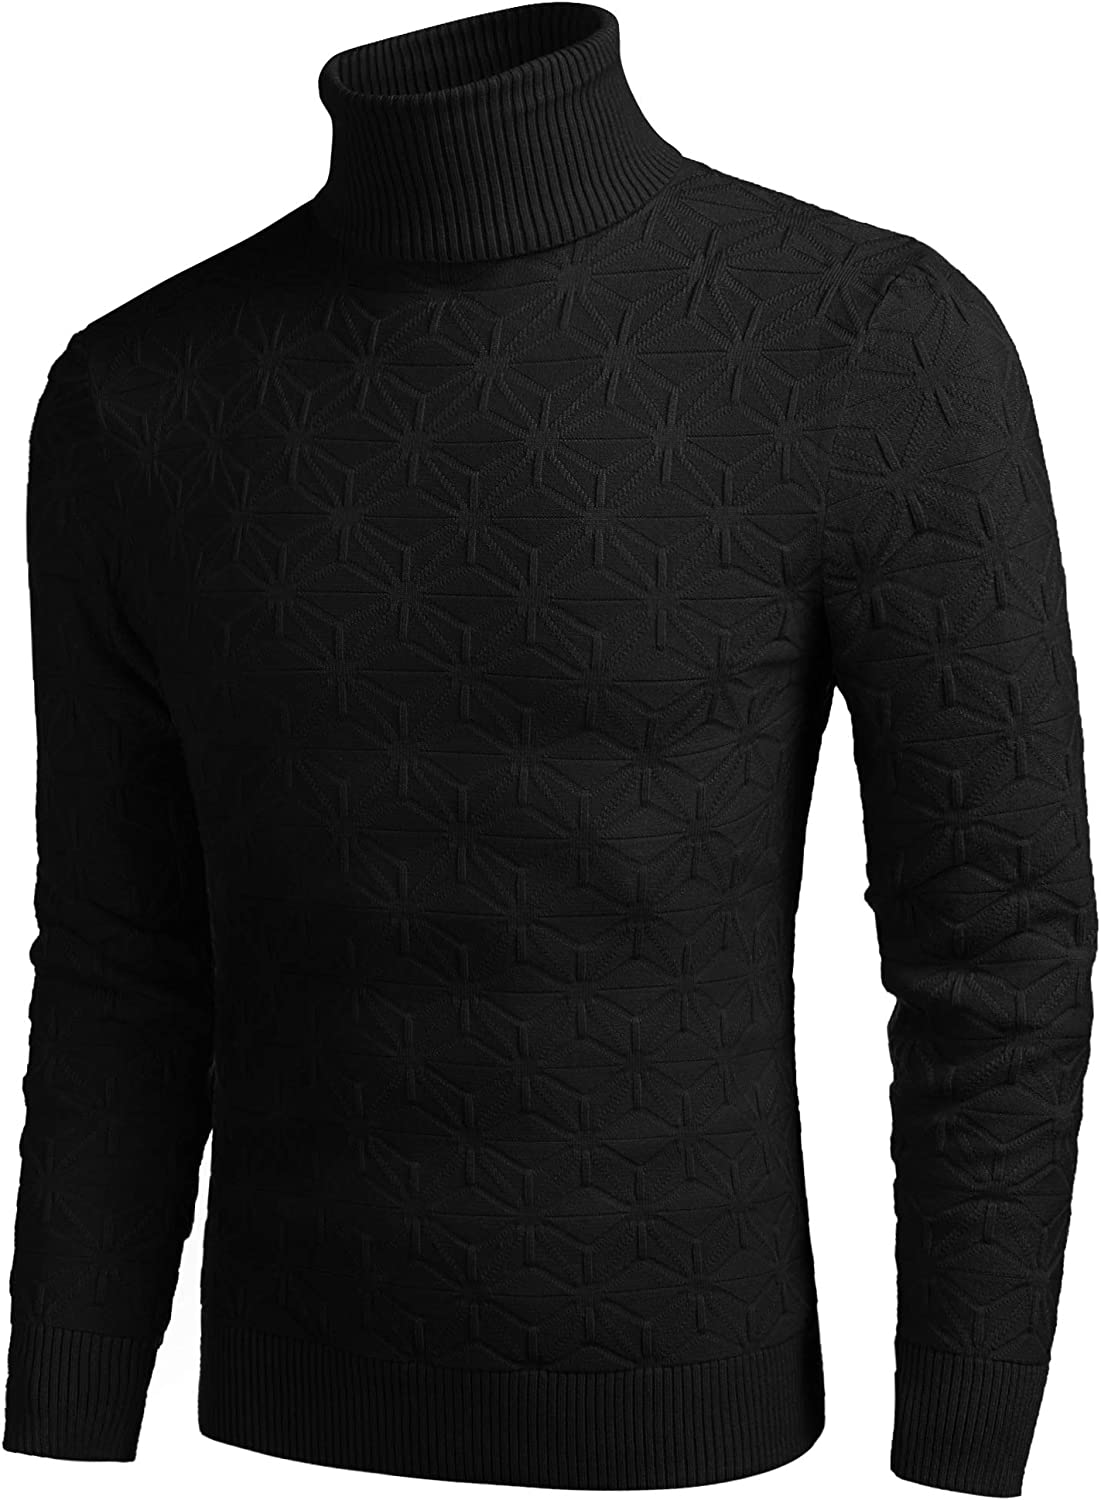 COOFANDY Men's Slim Fit Turtleneck Sweater Stylish Cotton Knitted Pullover Sweater